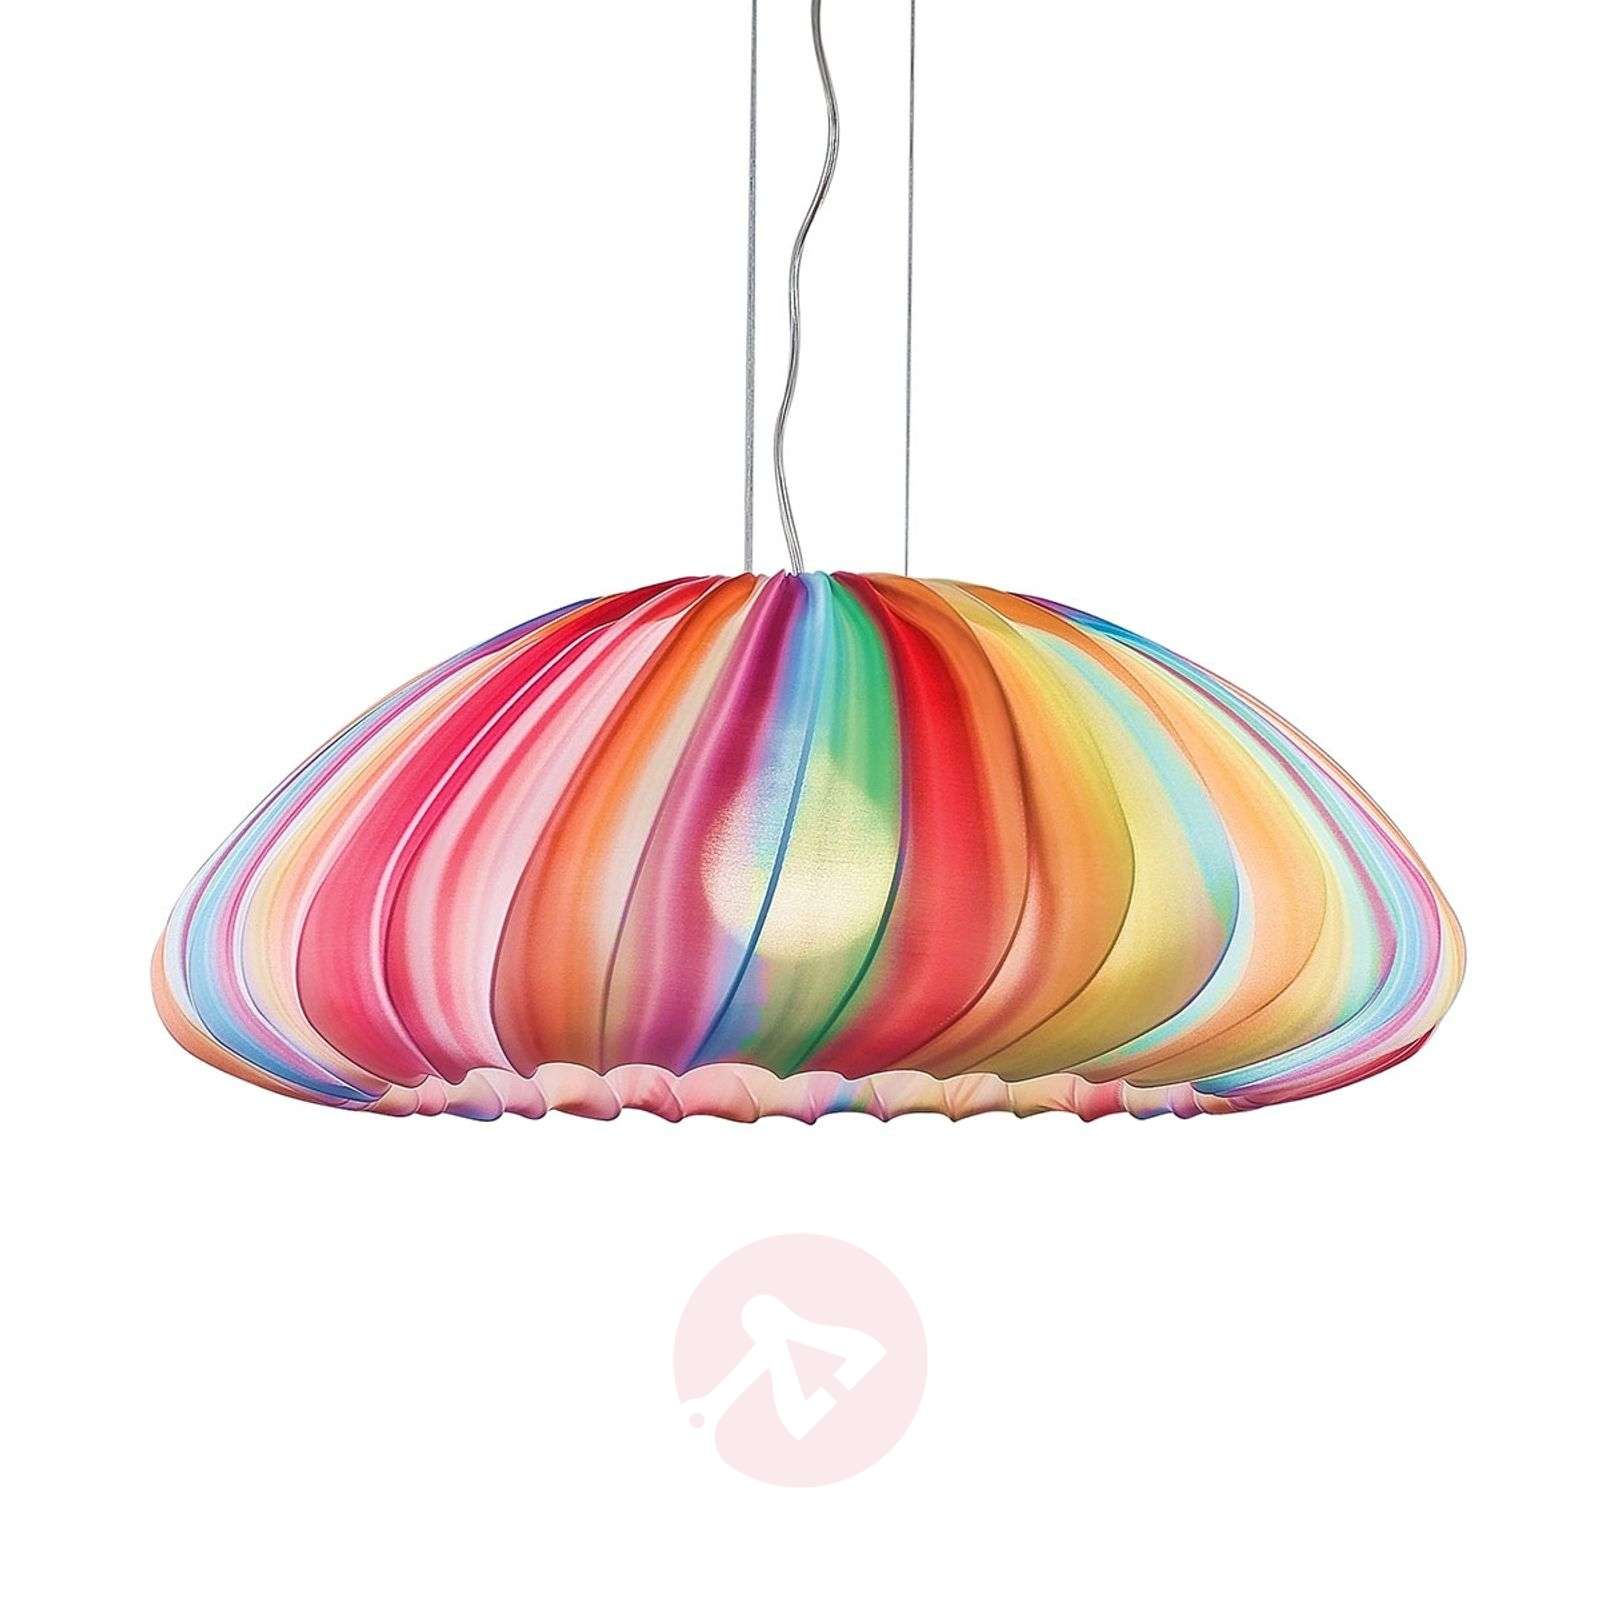 Axolight Muse lámpara colgante, multicolor, 80 cm-1088015-01